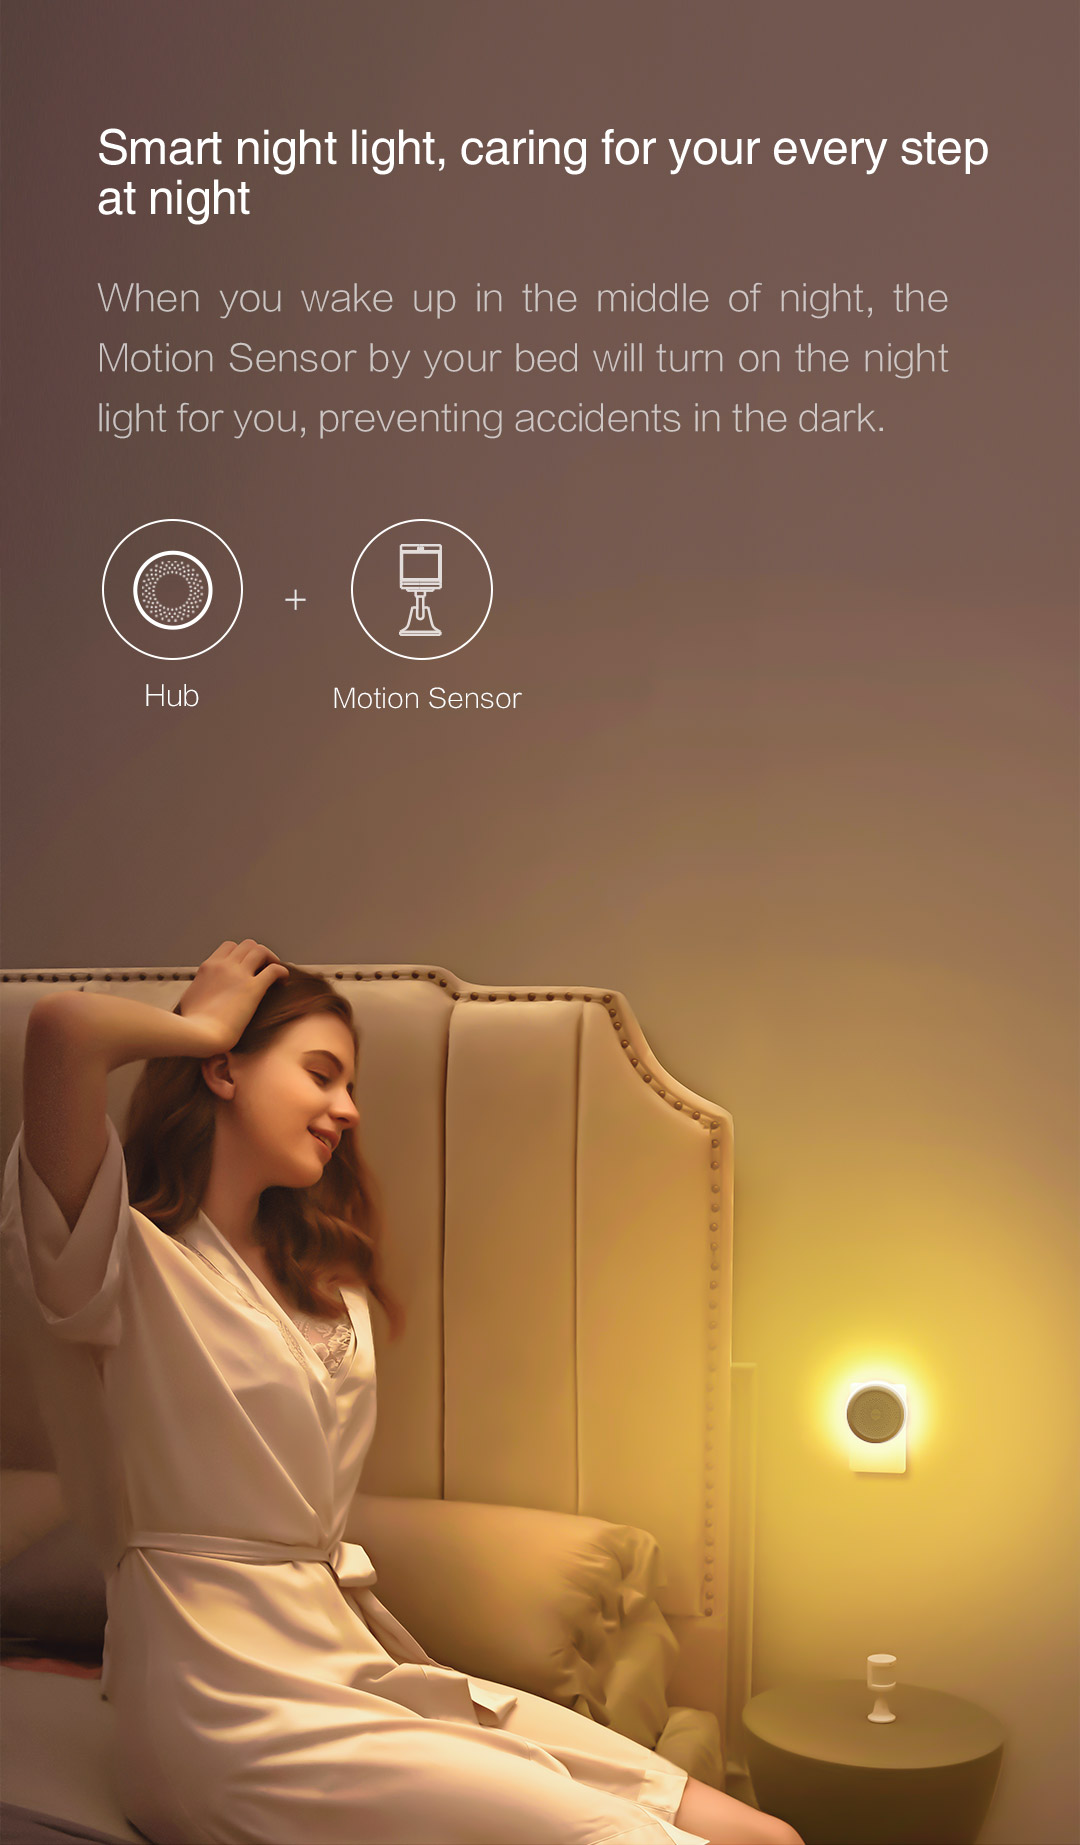 Hub + Human Motion Sensor: Smart night light, caring for your every step at night